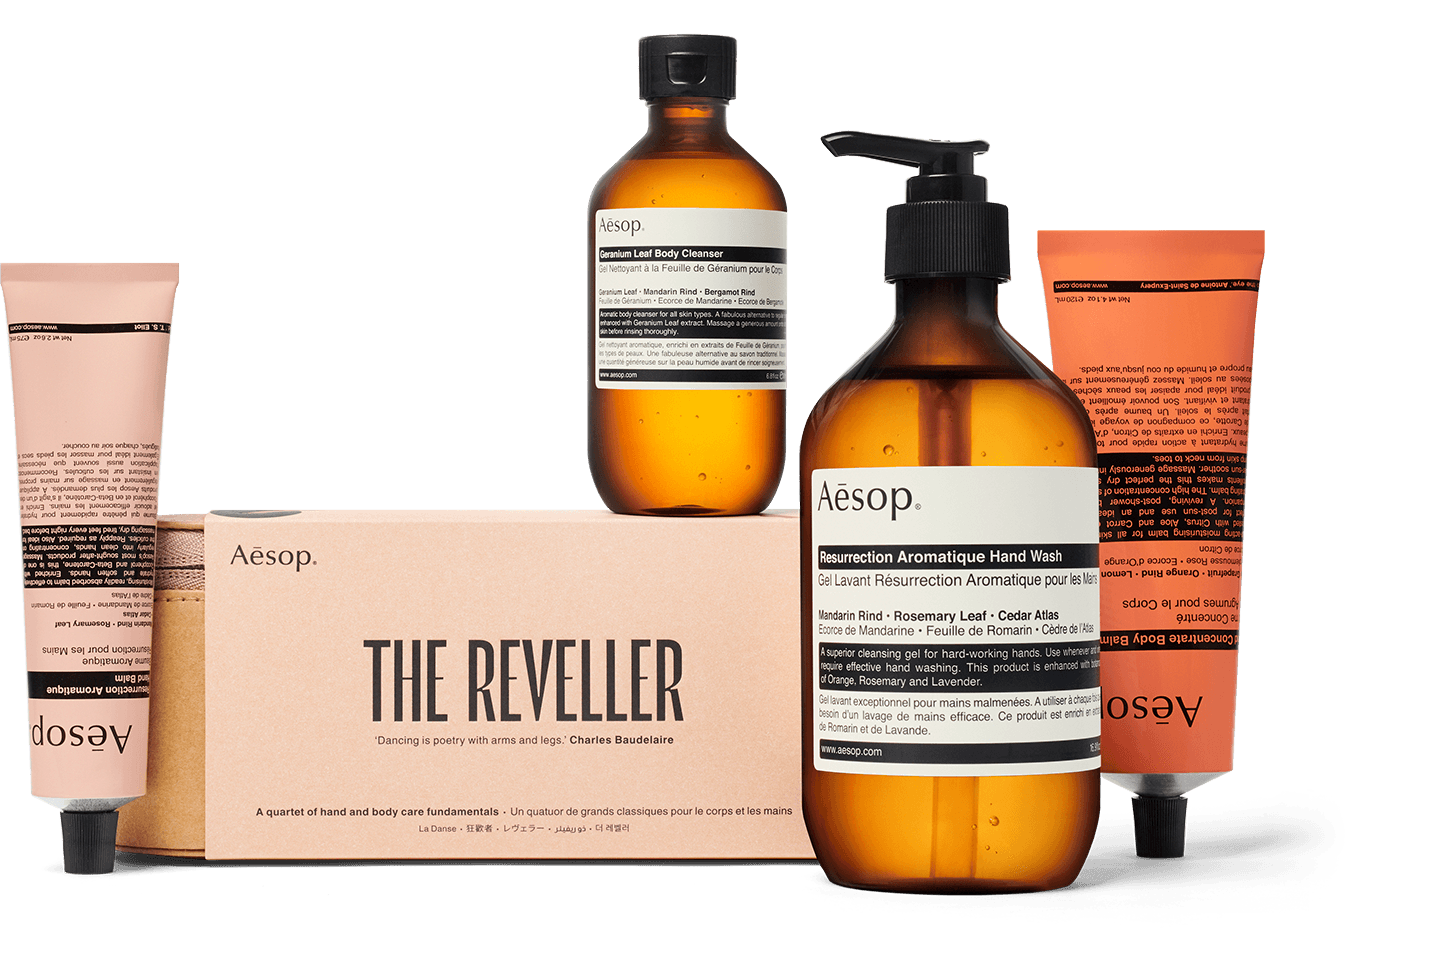 The Reveller gift kit includes a spread of hand and body care products.